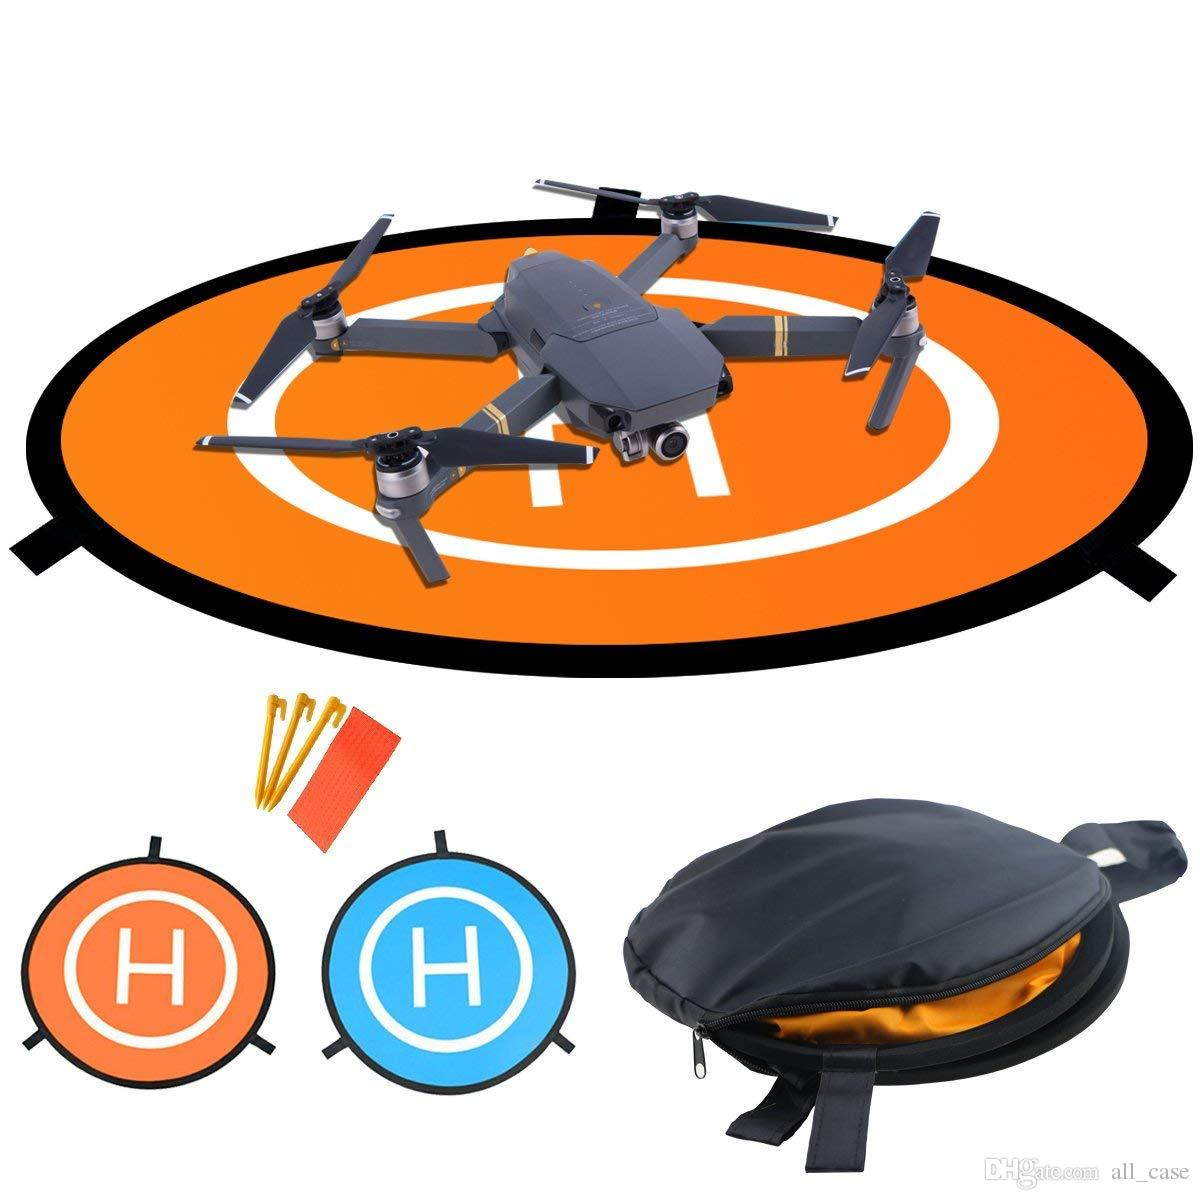 Drones Landing Pad,Universal Waterproof D 75cm/30'' Portable Foldable Landing Pads for RC Drones Helicopter, PVB Drones, DJI, Antel Robotic